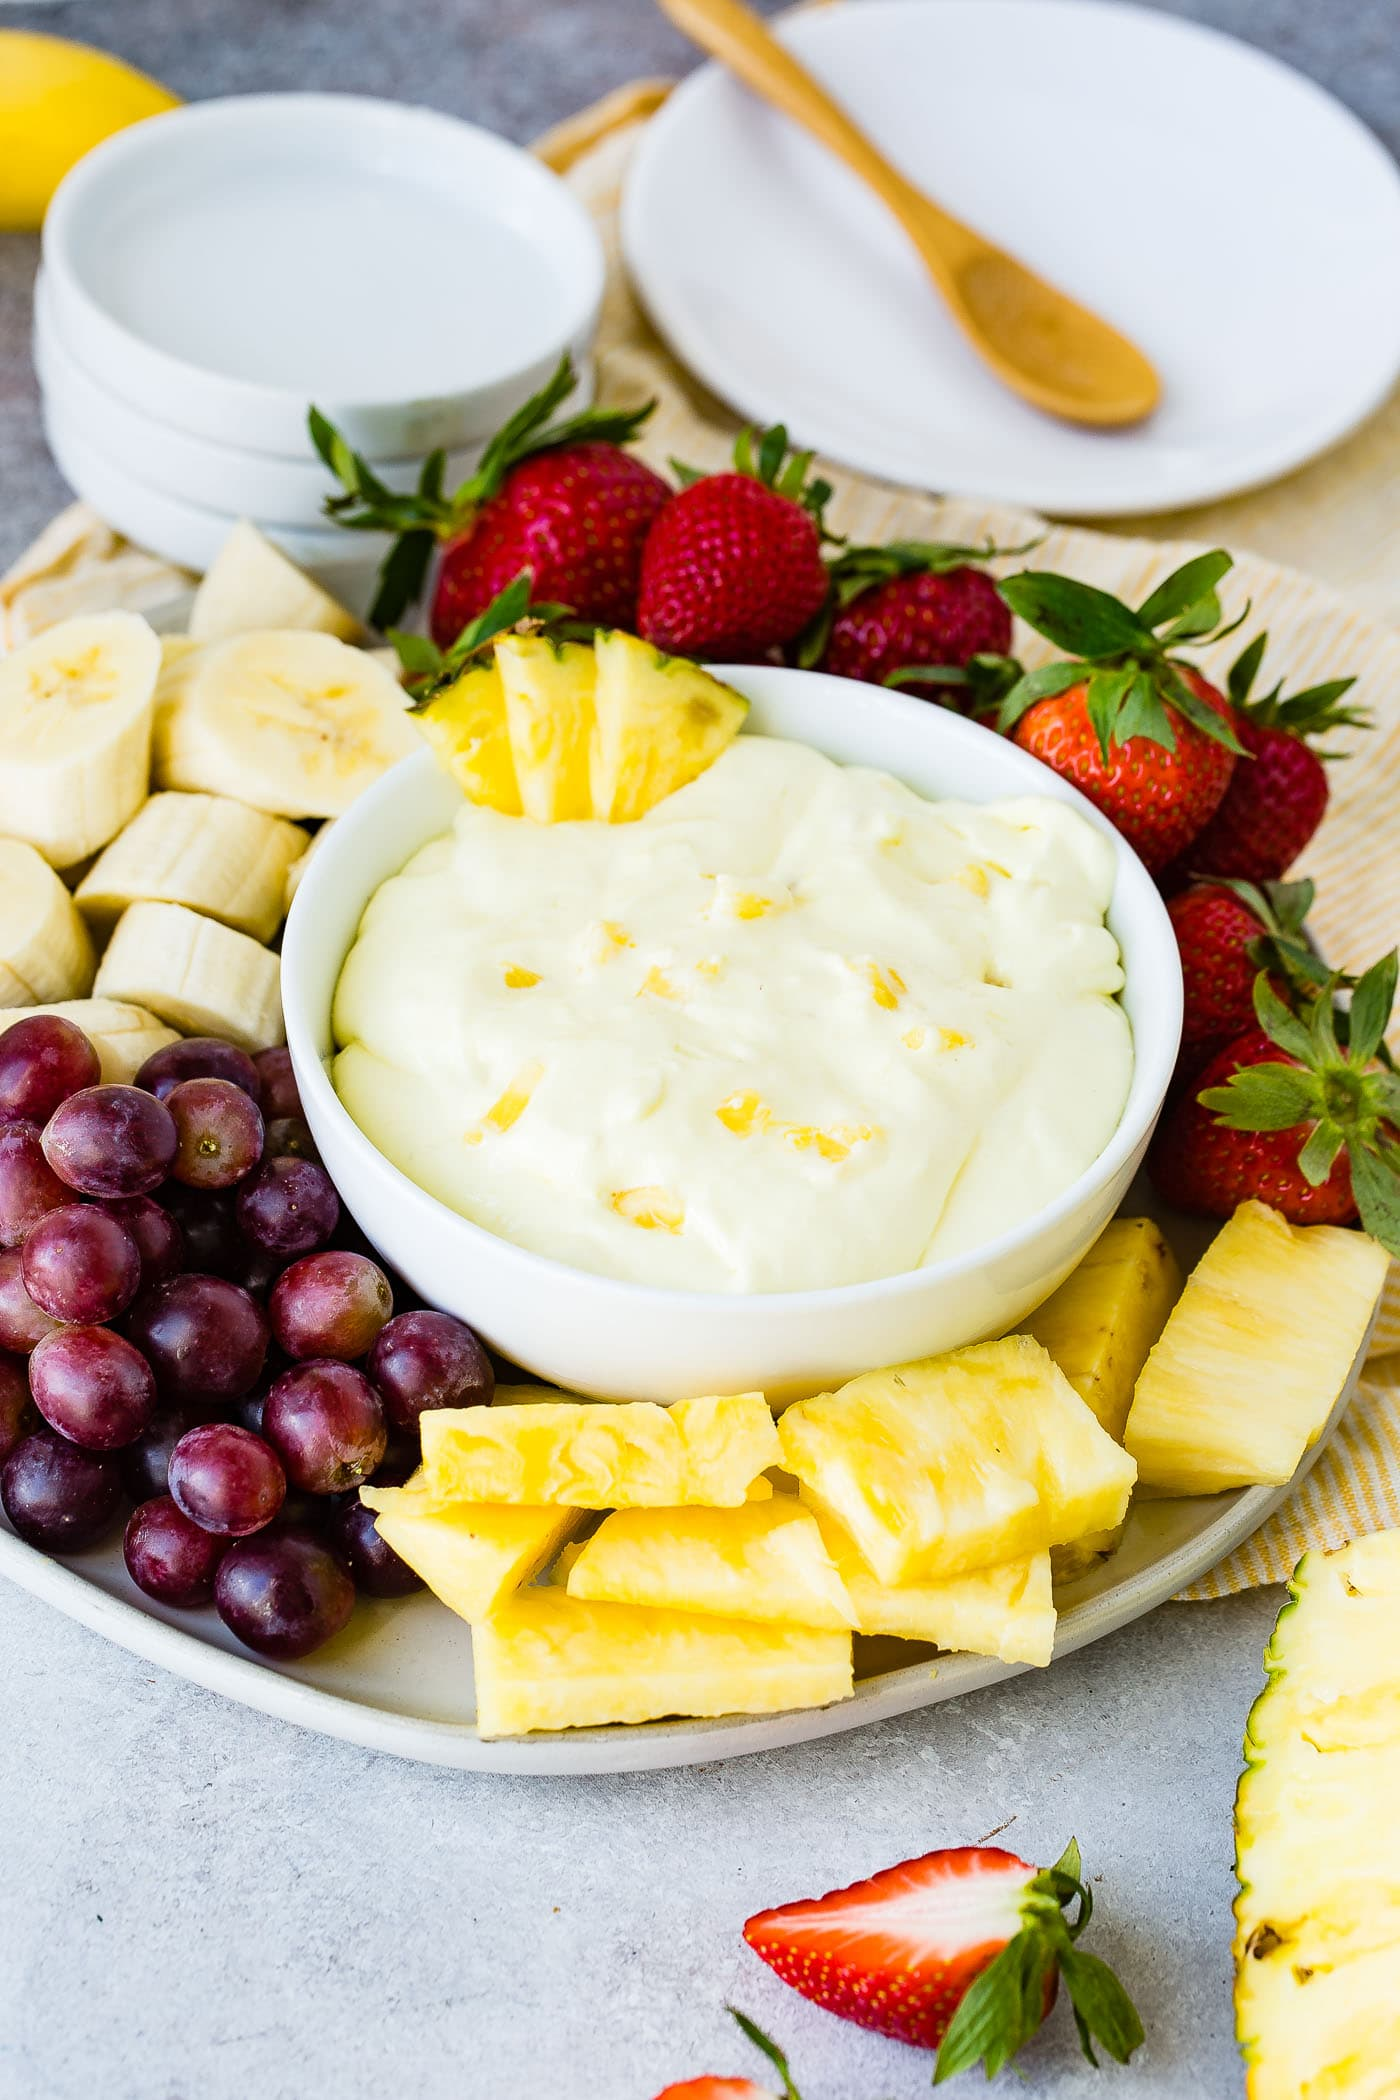 A bowl of pineapple cream cheese fruit dip with three pieces of pineapple on the edge of the bowl. The bowl is sitting on a serving tray with banana slices, red grapes, pineapple chunks, and strawberries surrounding the bowl.